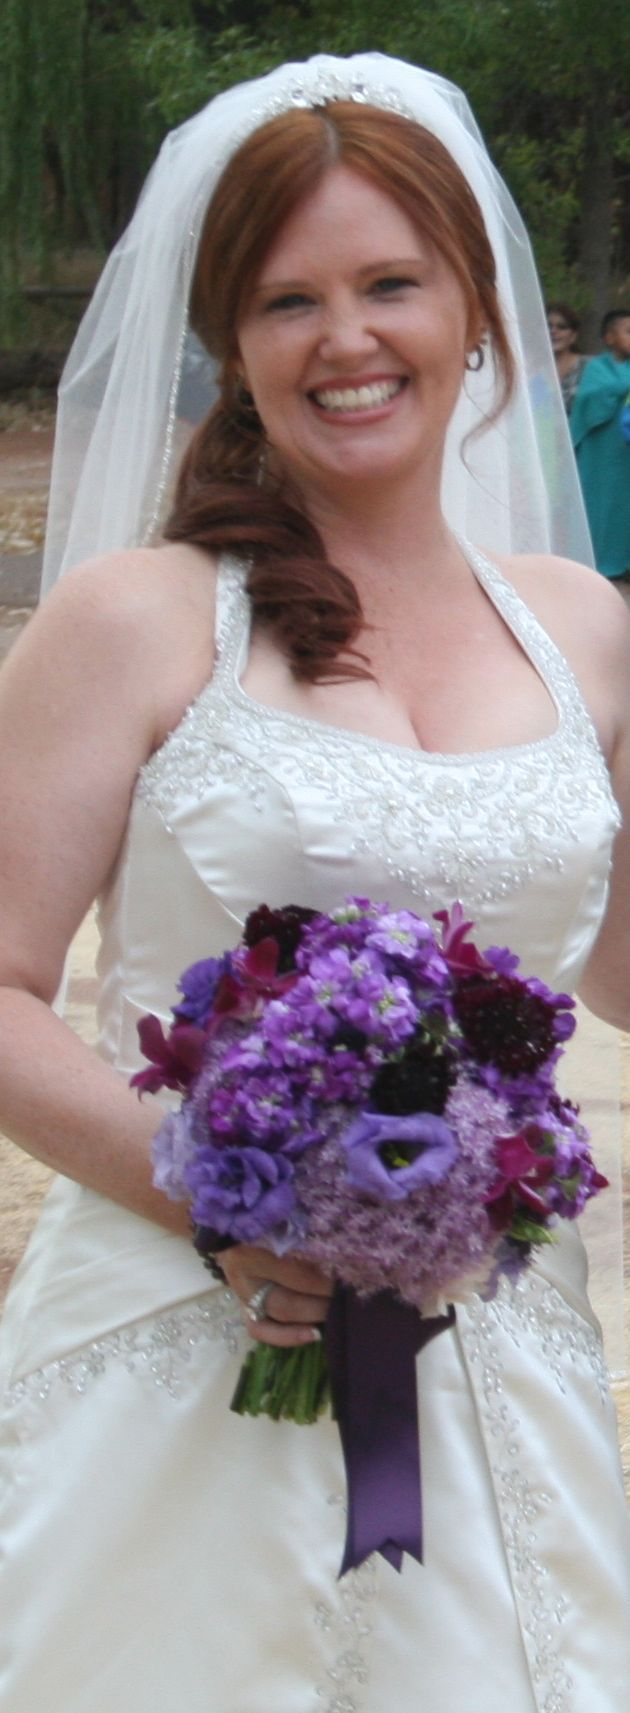 purple, Bride, Bouquet, Happy